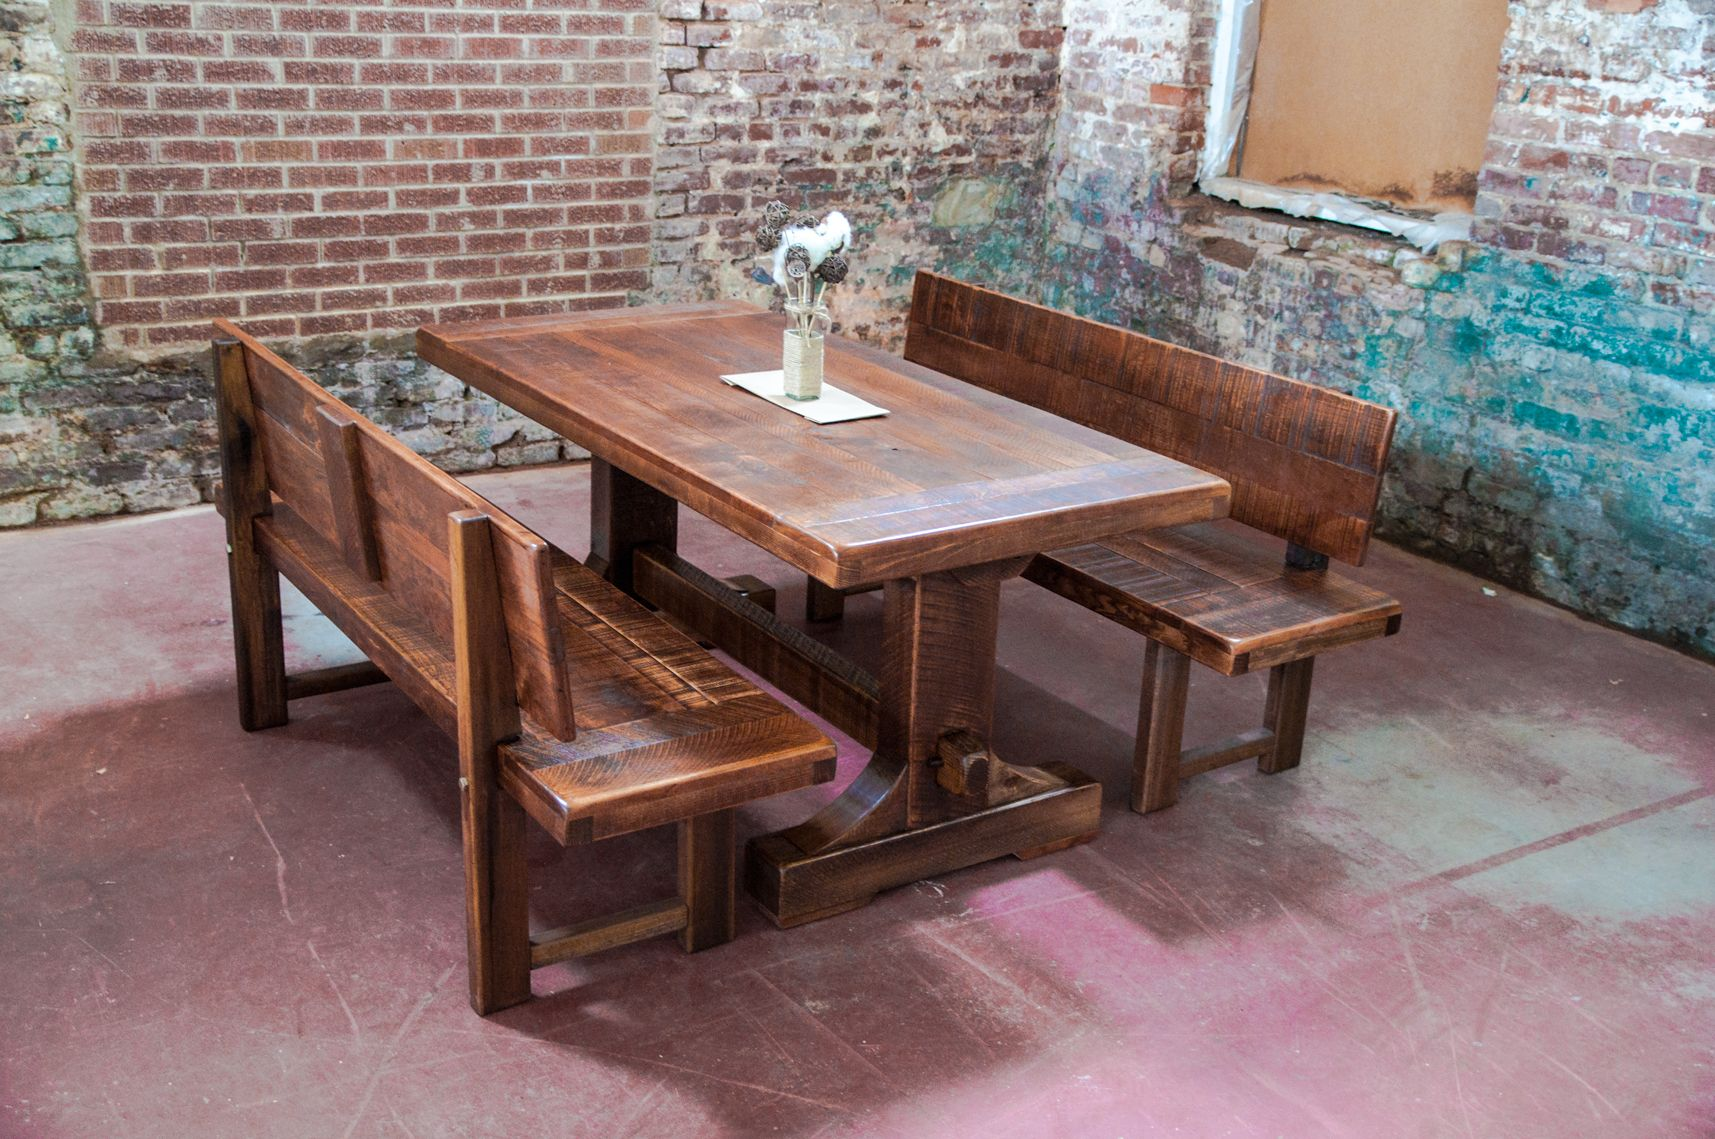 Admirable Short Narrow Emerson Trestle Farm Table Bench With Back Ibusinesslaw Wood Chair Design Ideas Ibusinesslaworg